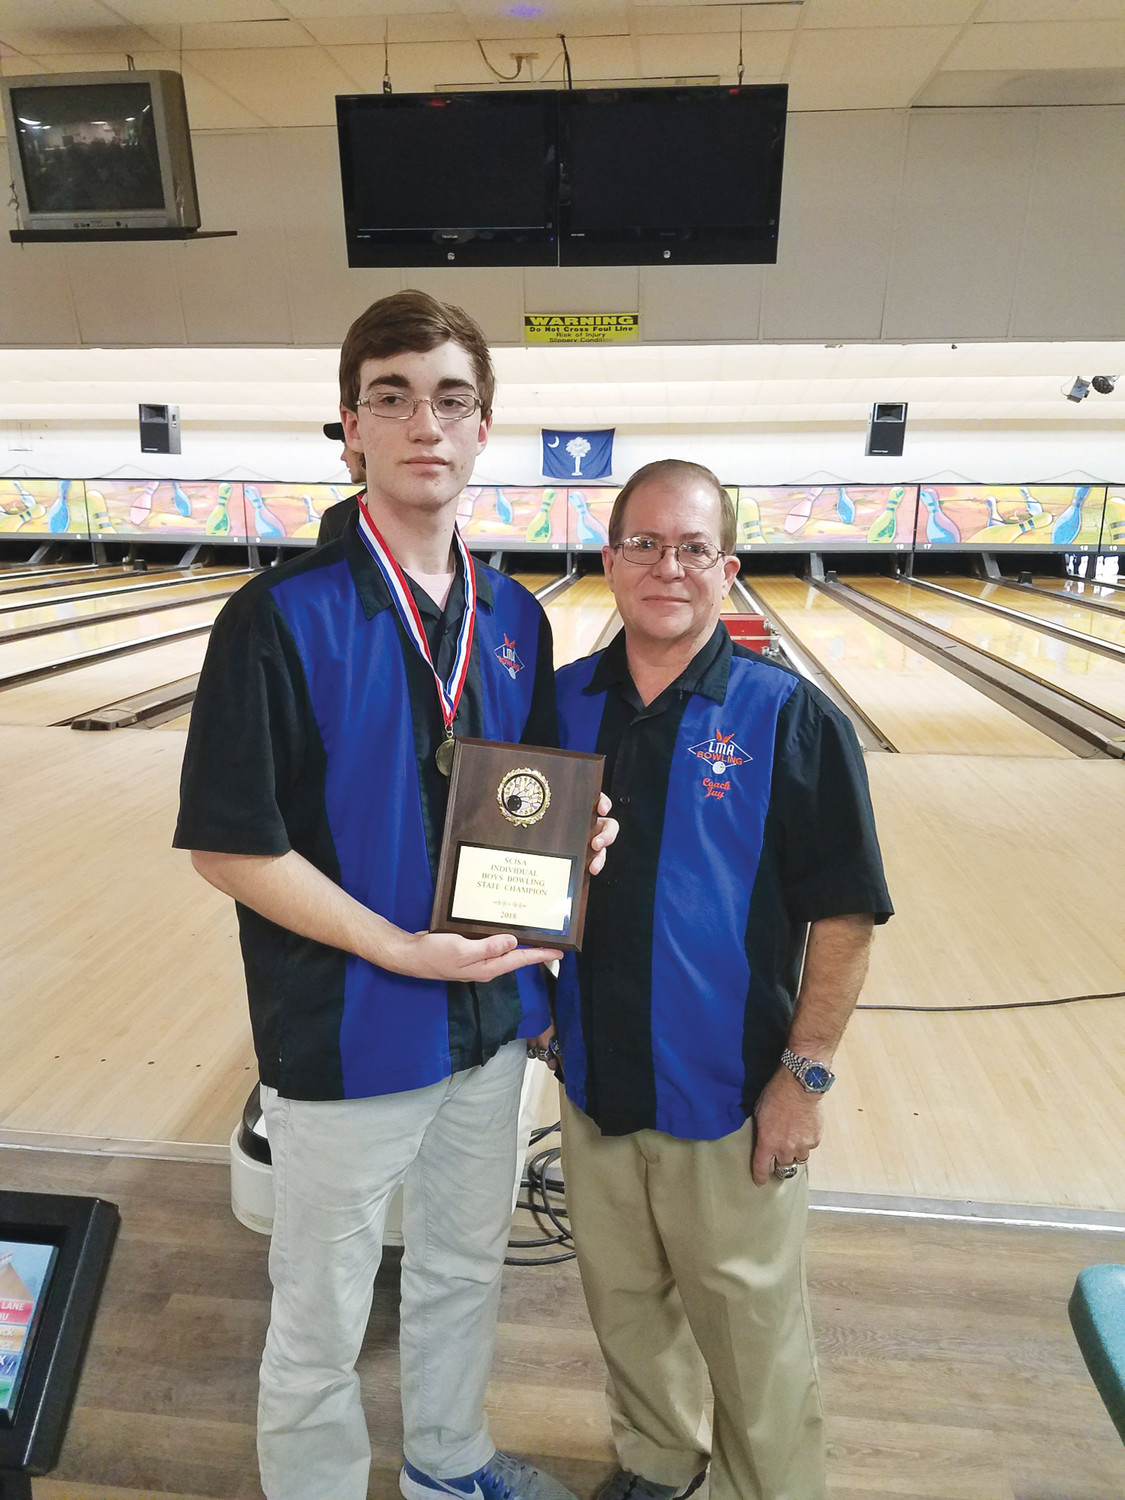 Photo providedLaurence Manning Academy's Mark Lupori, left, shows the plaque he received for winning the SCISA boys individual bowling championship on Thursday at Gamecock Lanes. To his right is LMA head coach Jay Atkins.